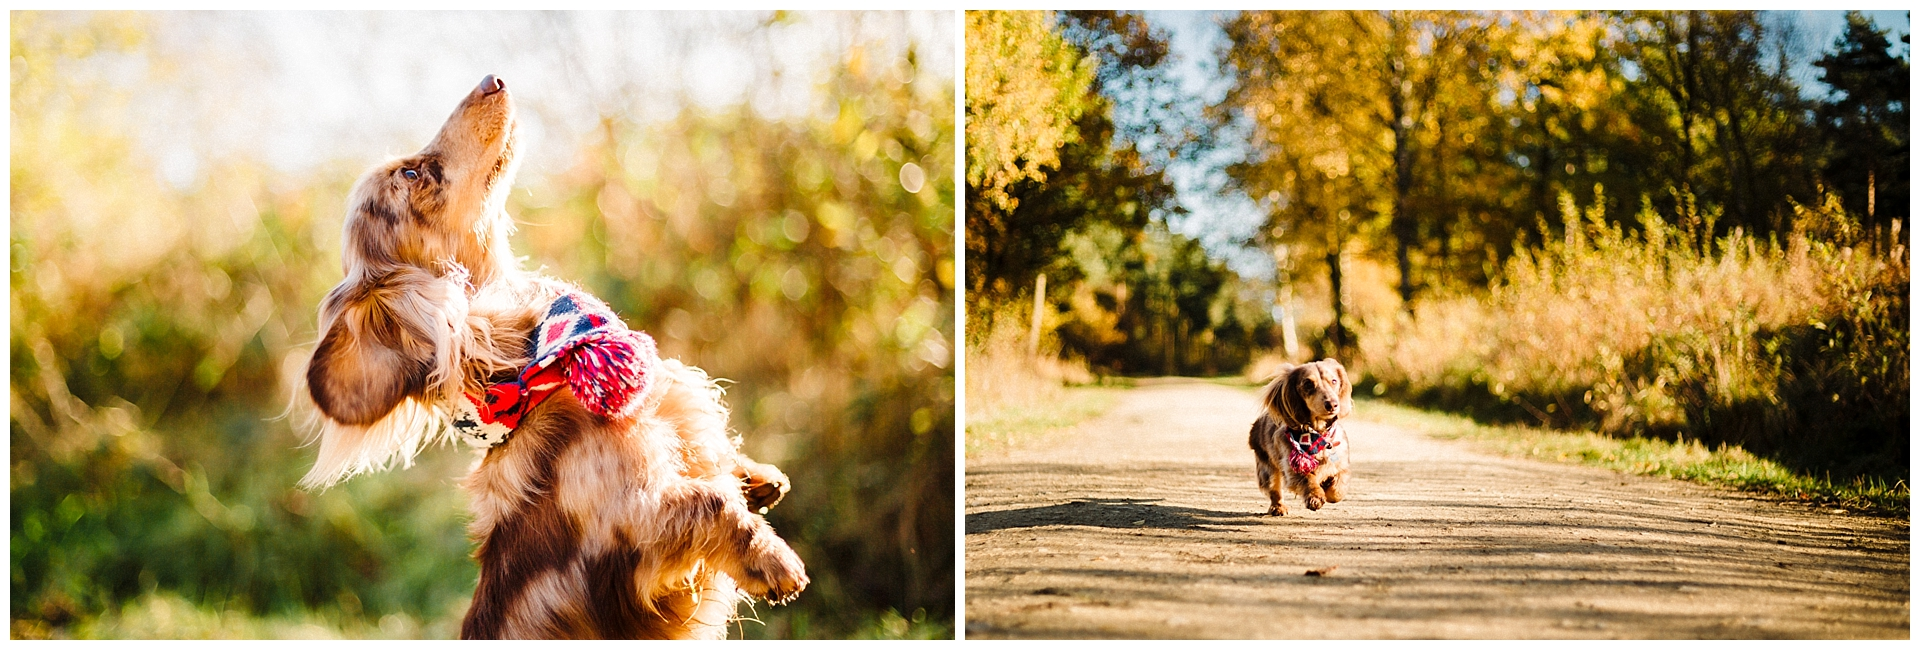 portraits of a long haired daschund standing on its back legs and running down a path